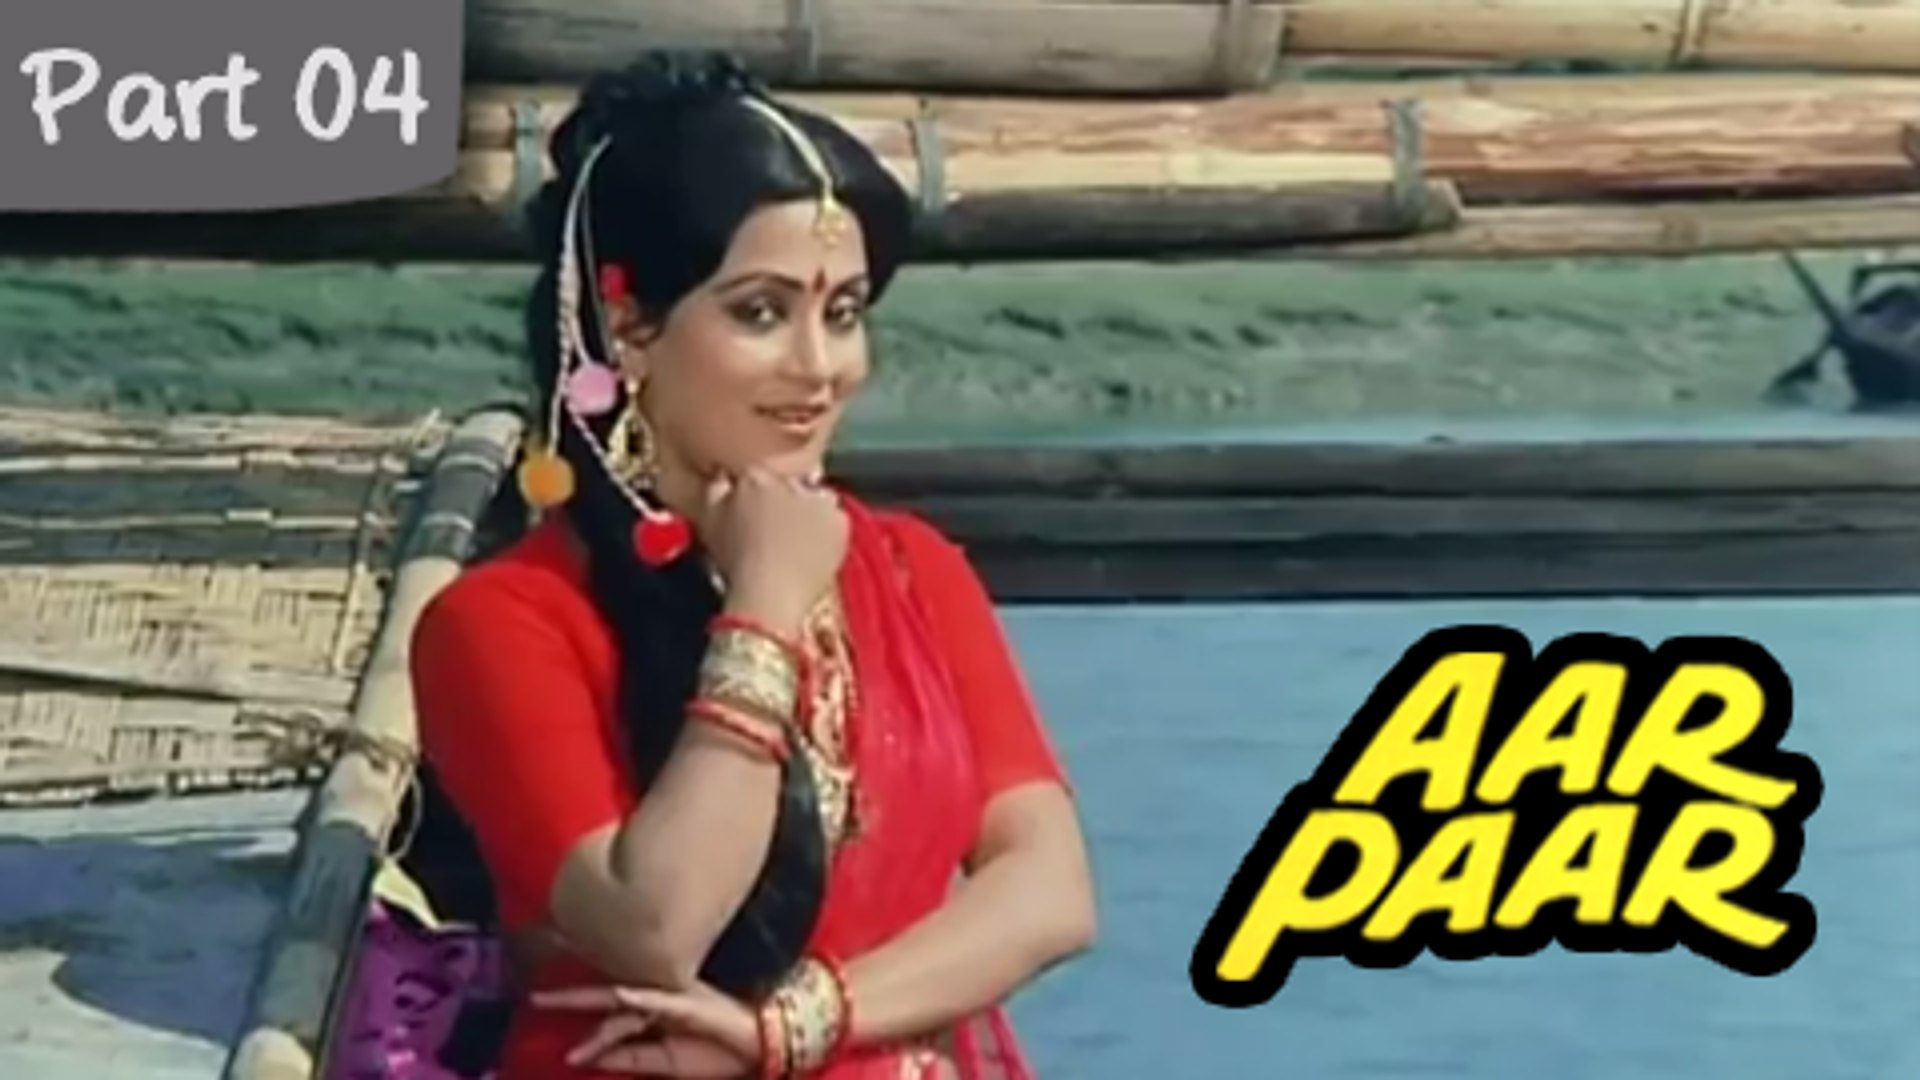 Aar Paar - Part 04/11 - Classic Blockbuster Hindi Movie - Mithun Chakraborty, Nutan